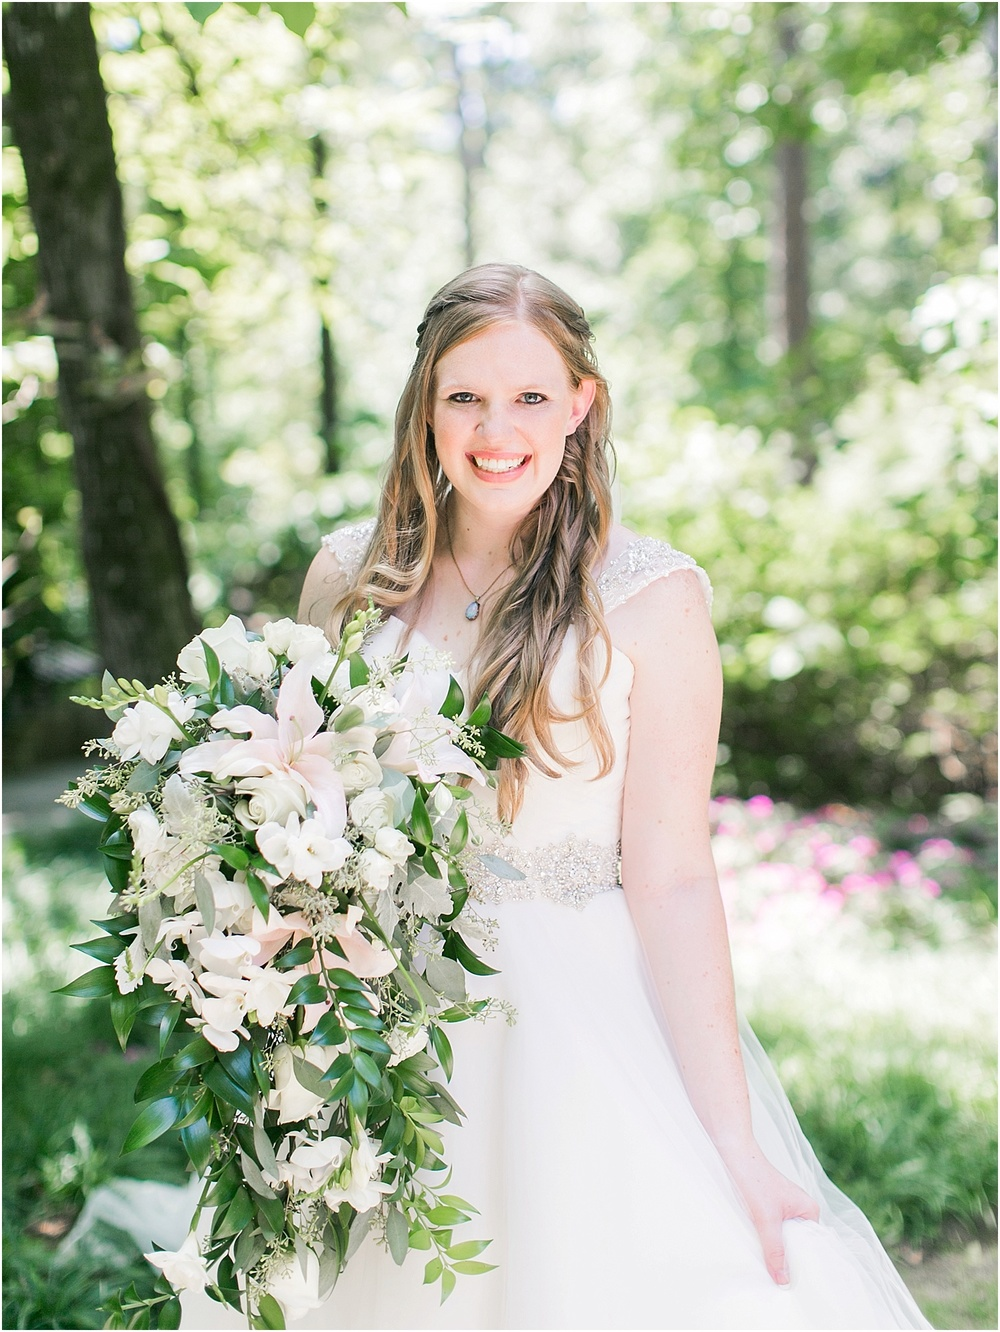 Floral Design by Flowers & Home | Dress & Veil by Norman's Bridal | Garvan Woodland Gardens in Hot Springs, Arkansas